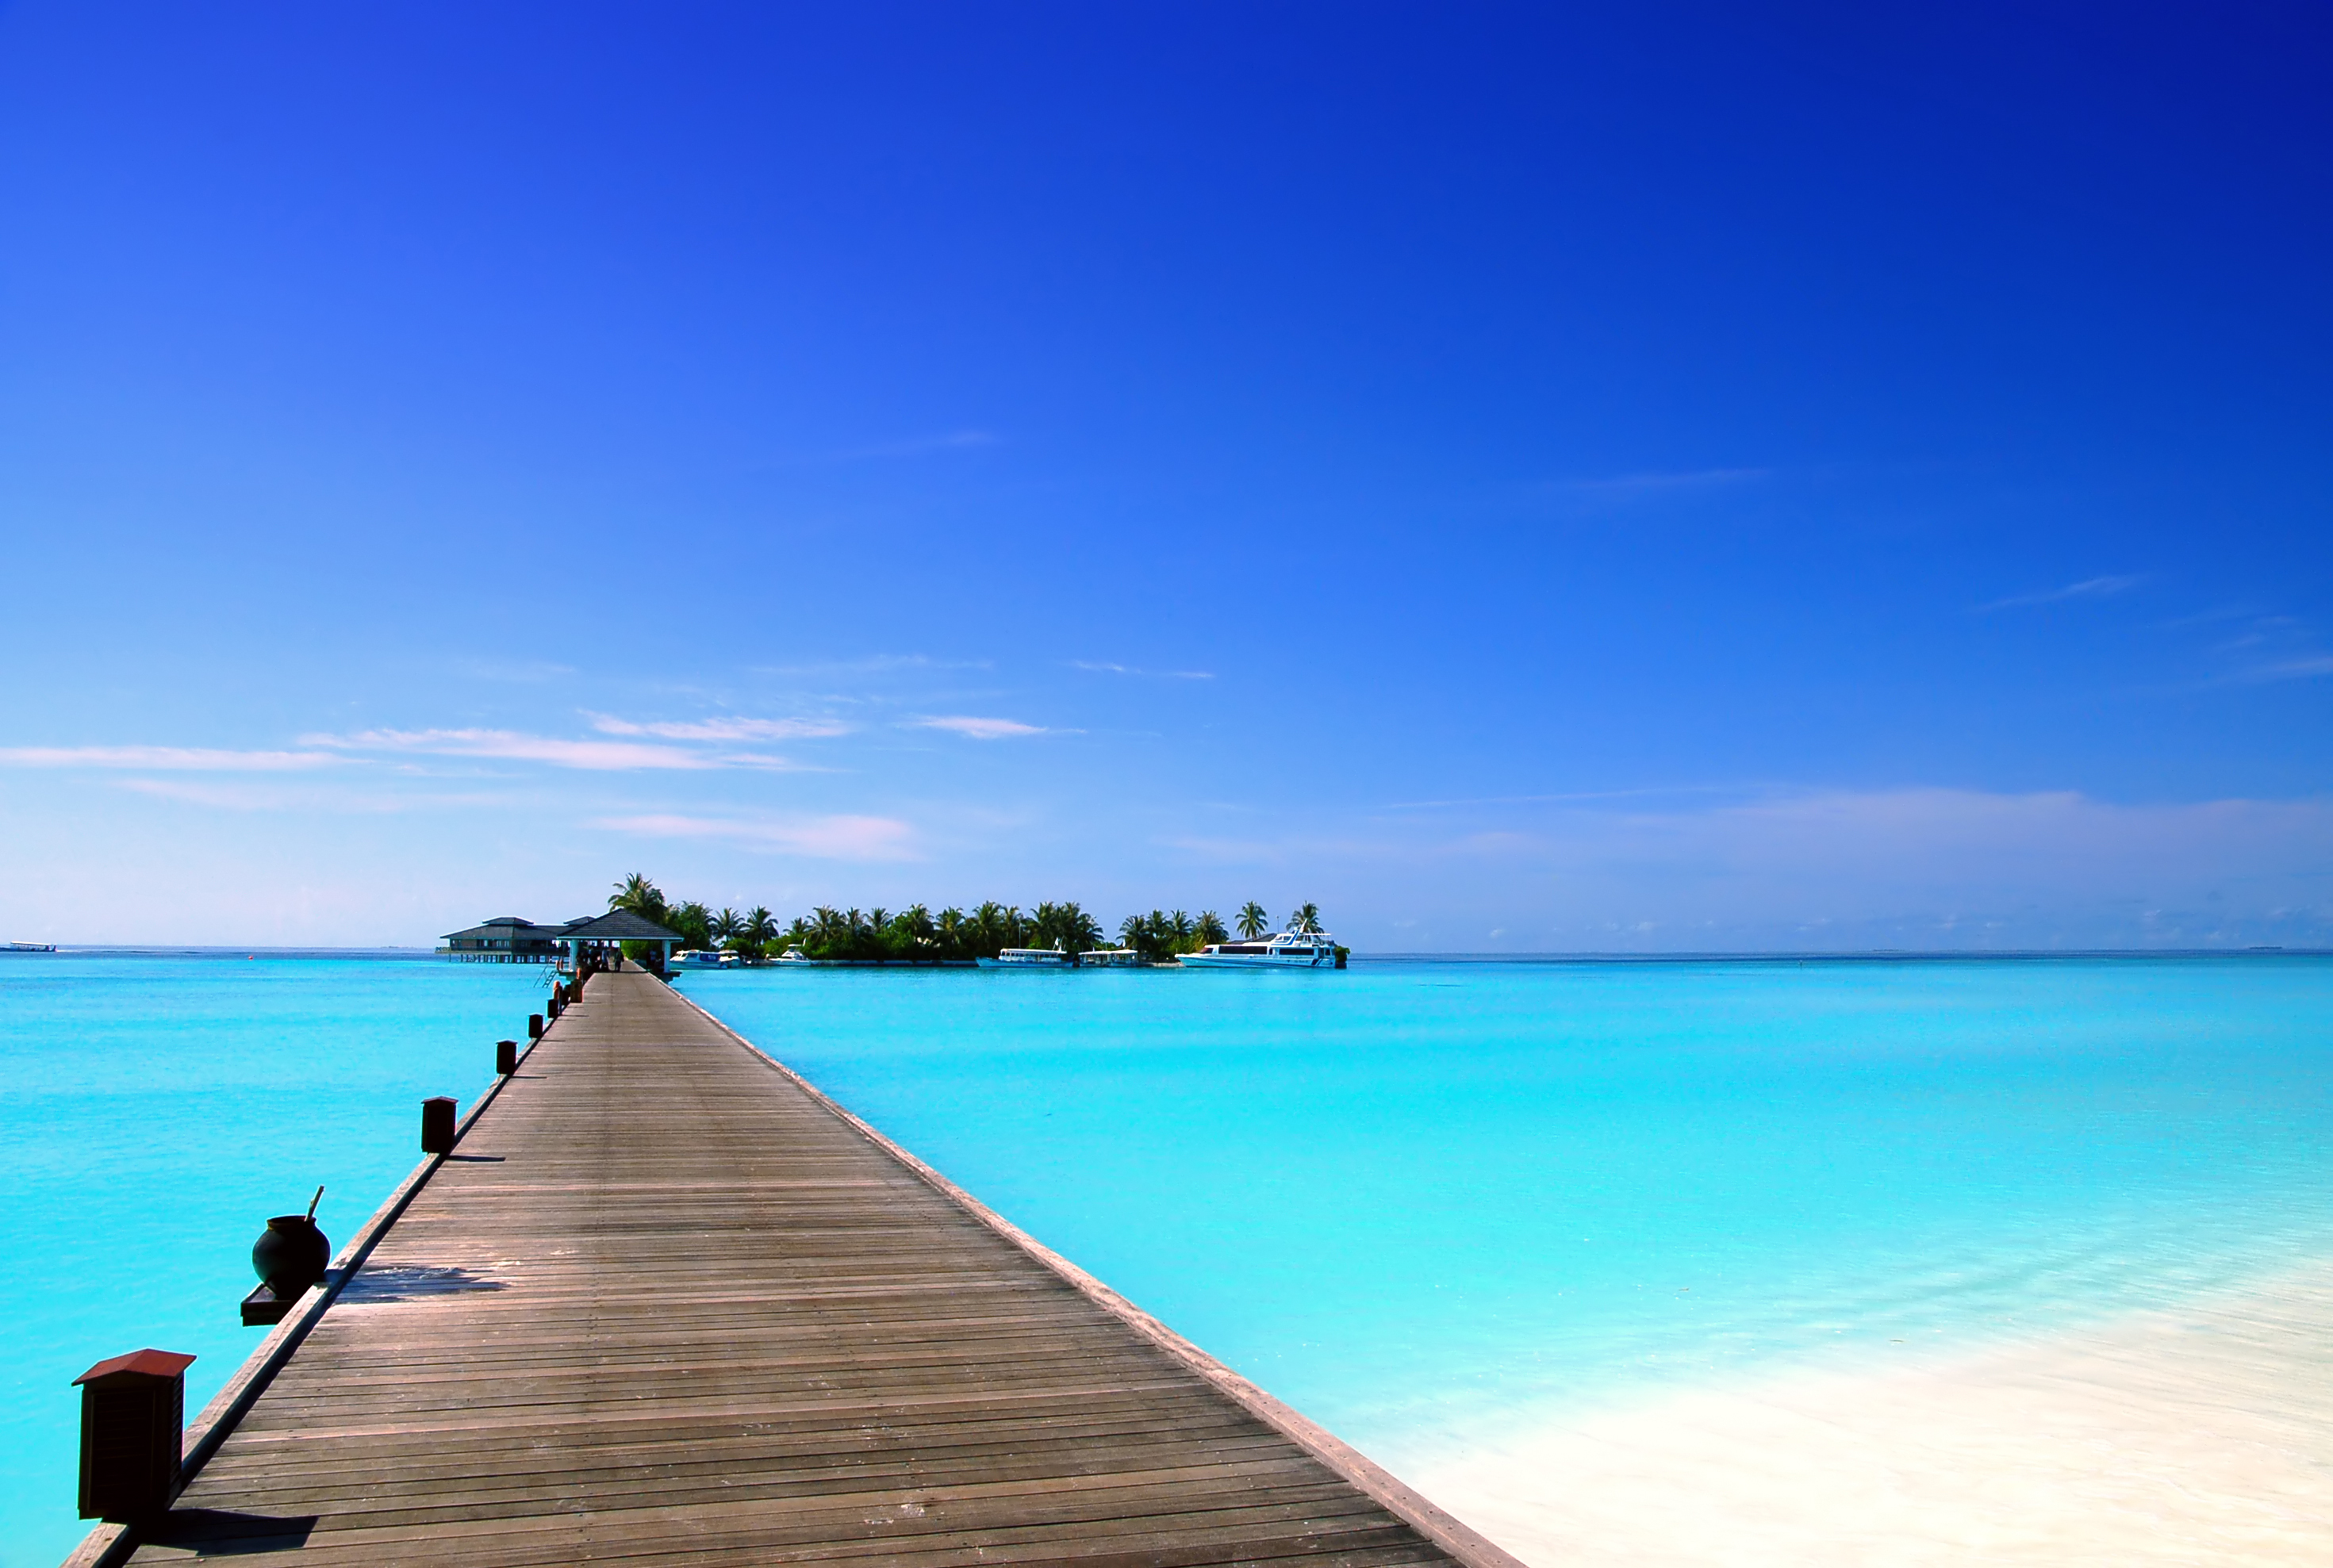 Best Island To Visit In The Maldives Islands